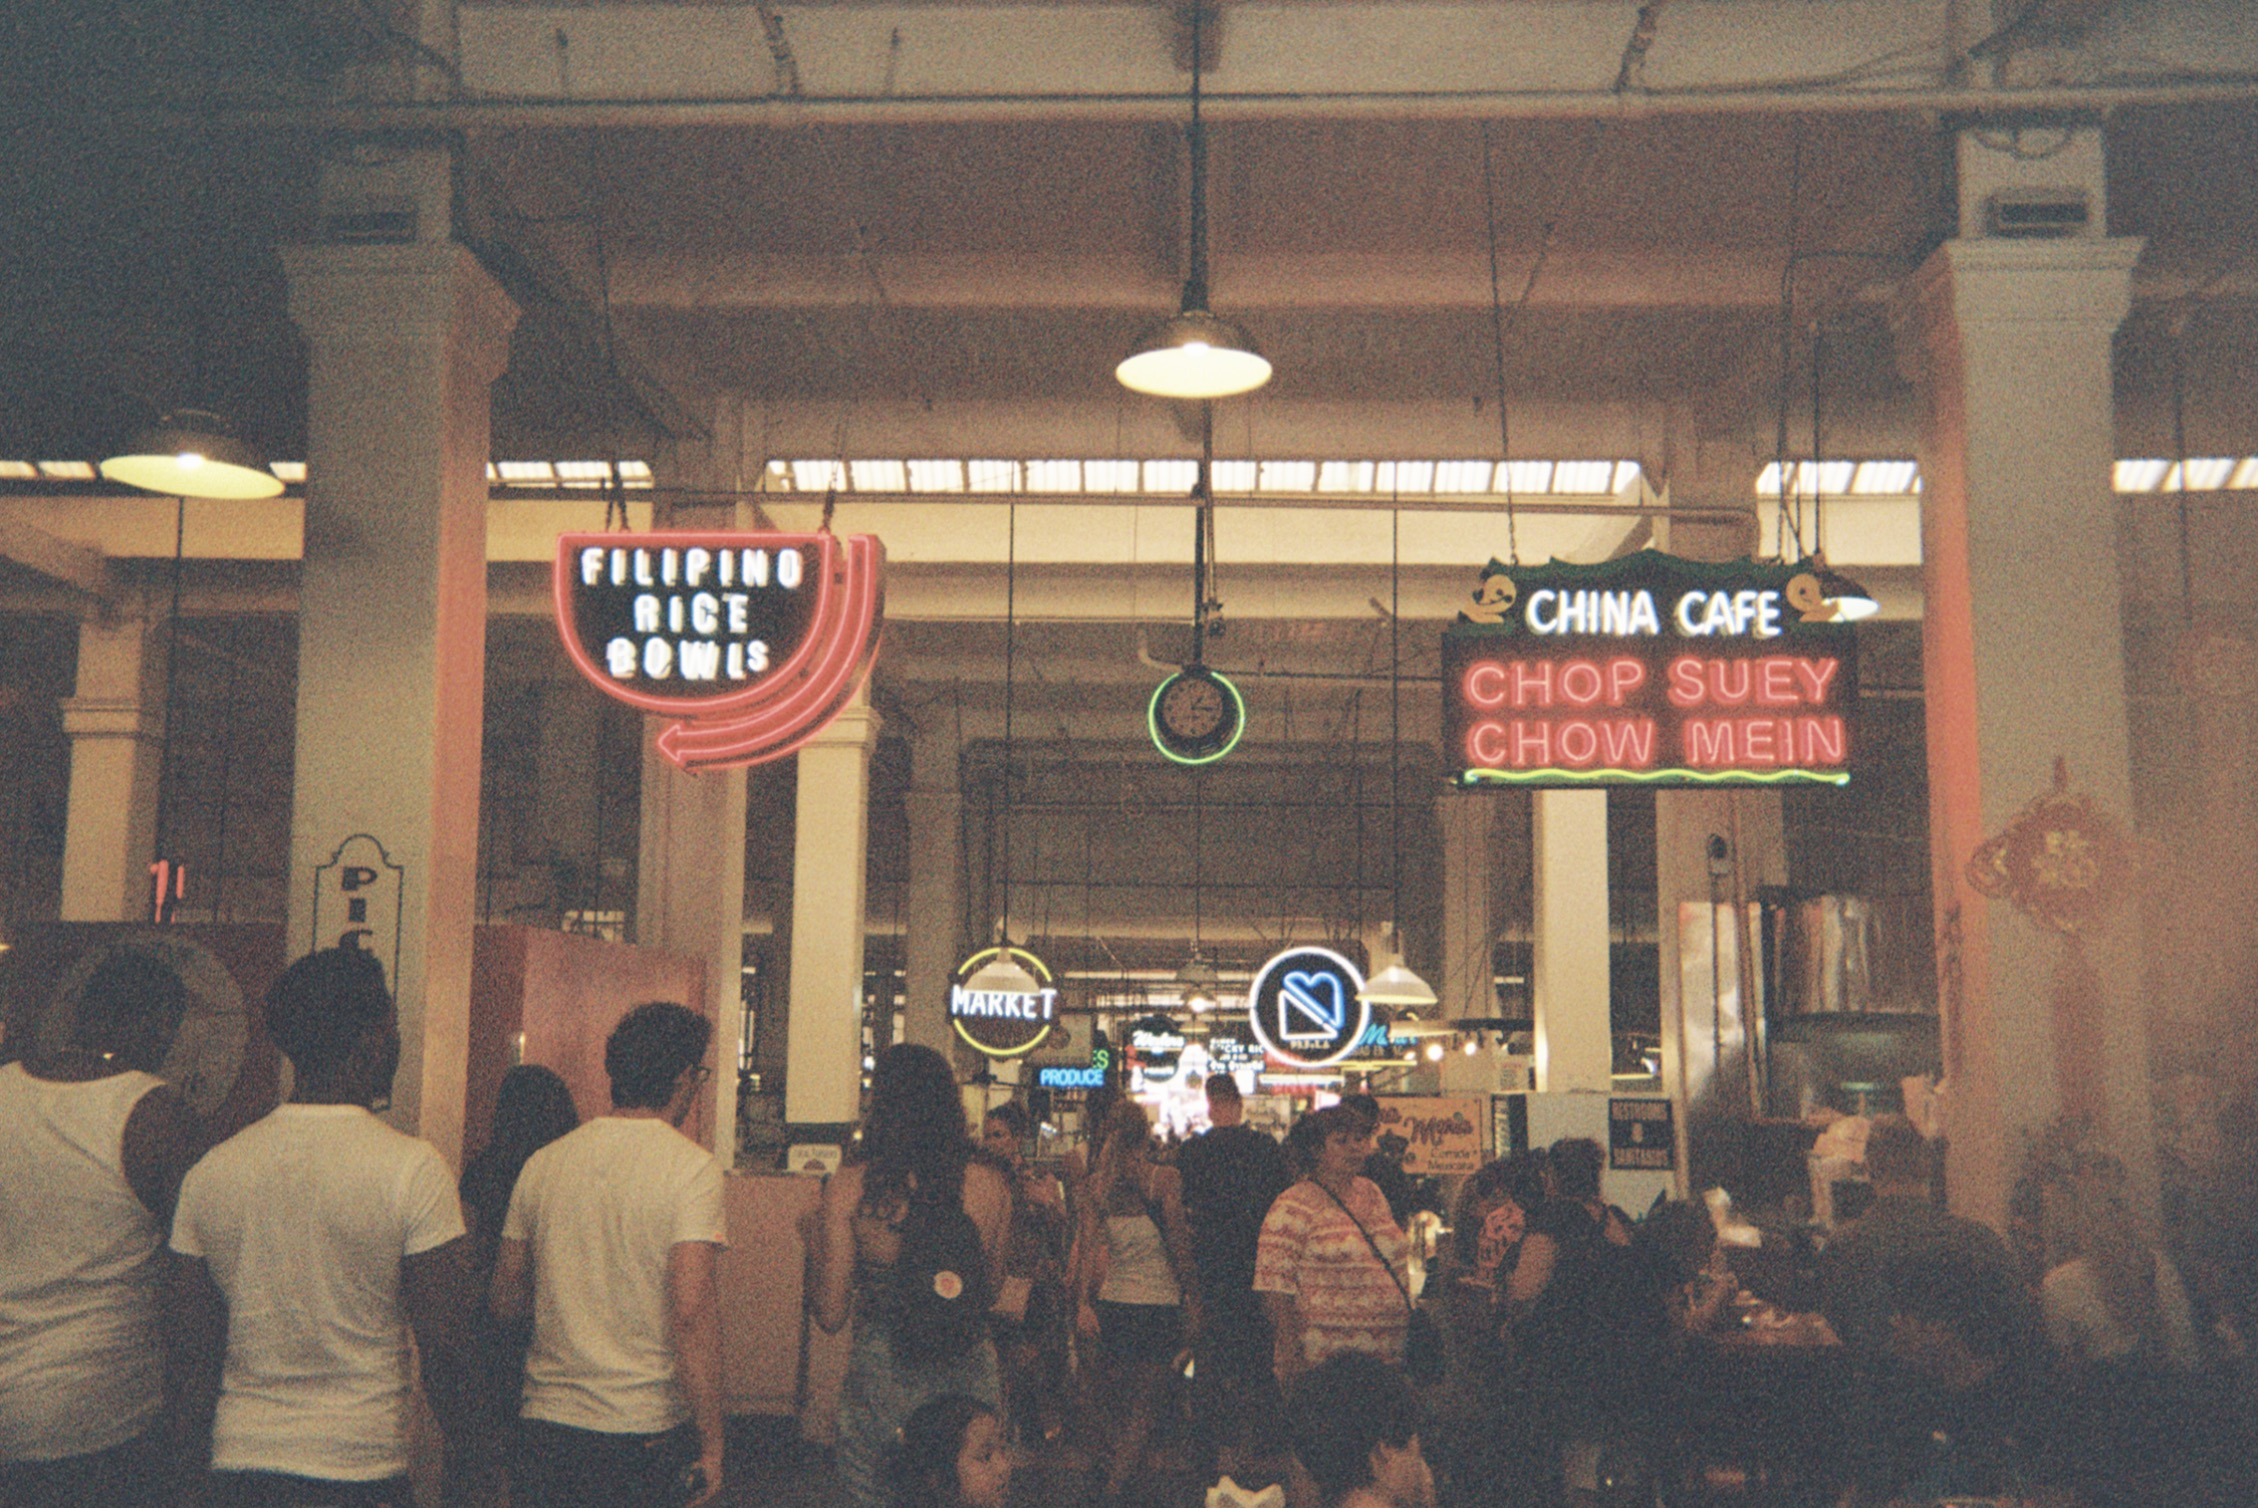 I love eating at Grand Central Market, the Filipino stall 'Sari Sari' in particular is TD4. I'm often there, sitting at the bar, slurping on a mango smoothie.